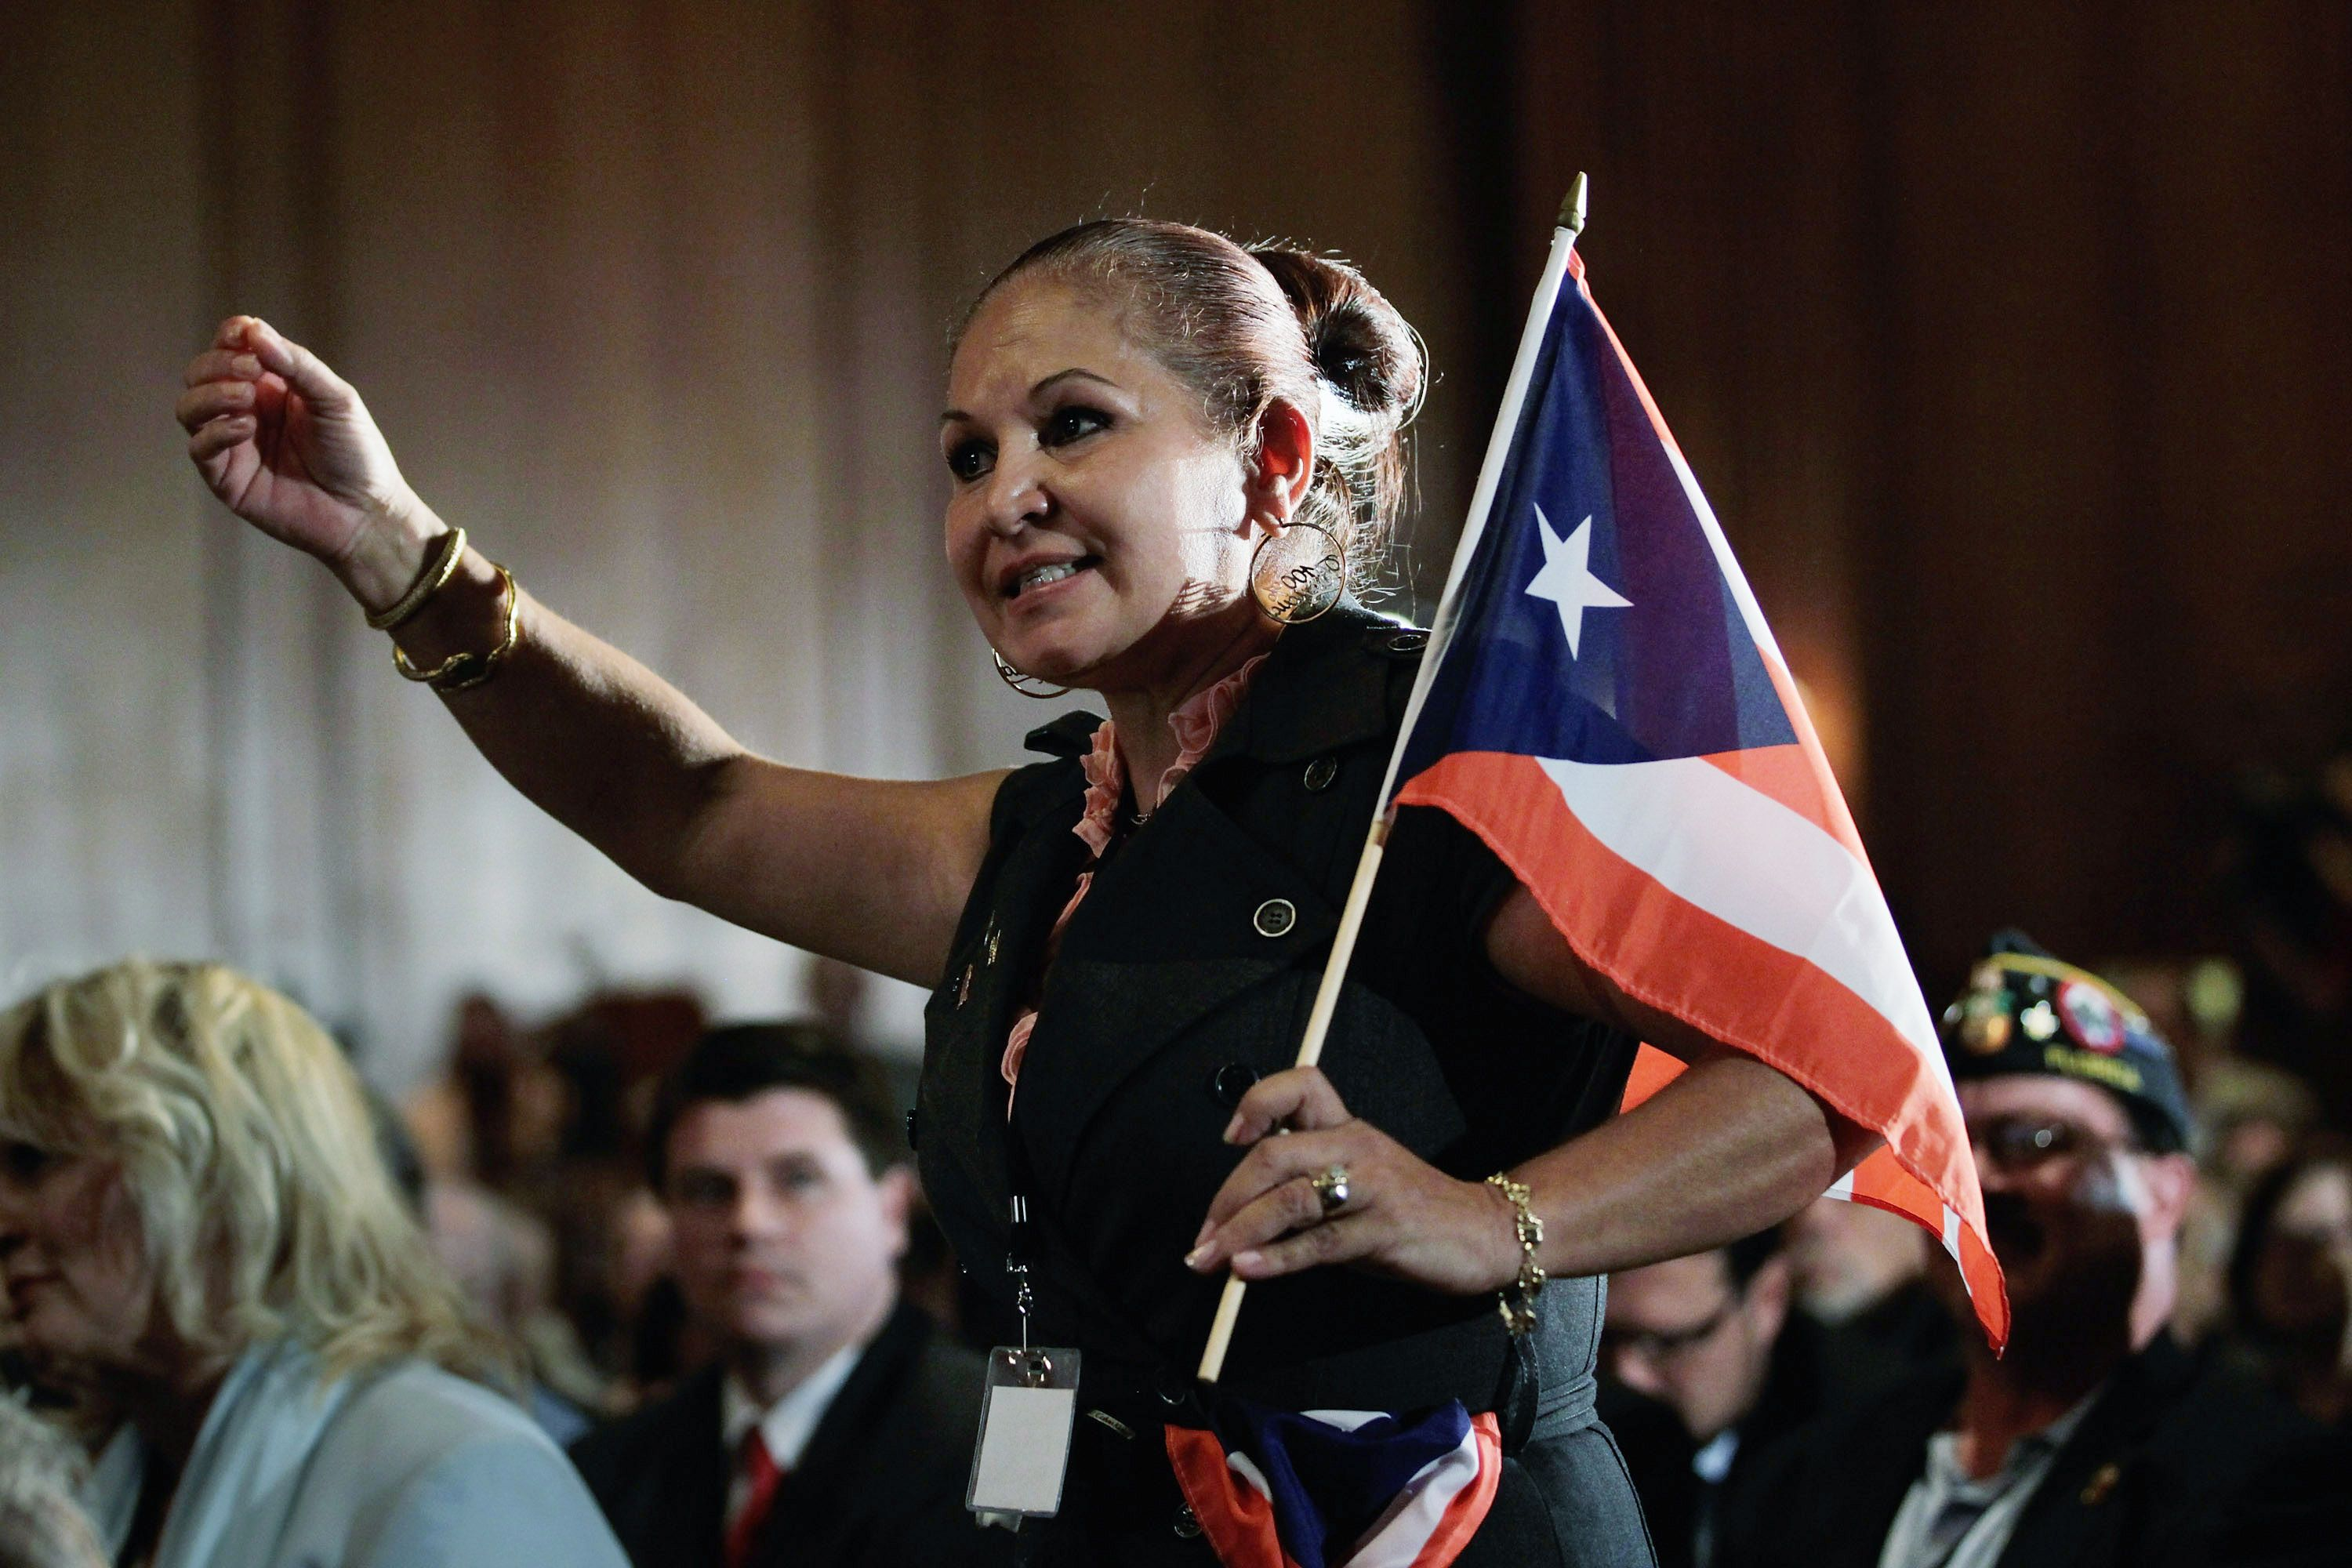 Some 73% of Latinos Favor Renewing Relations with Cuba, Survey Says